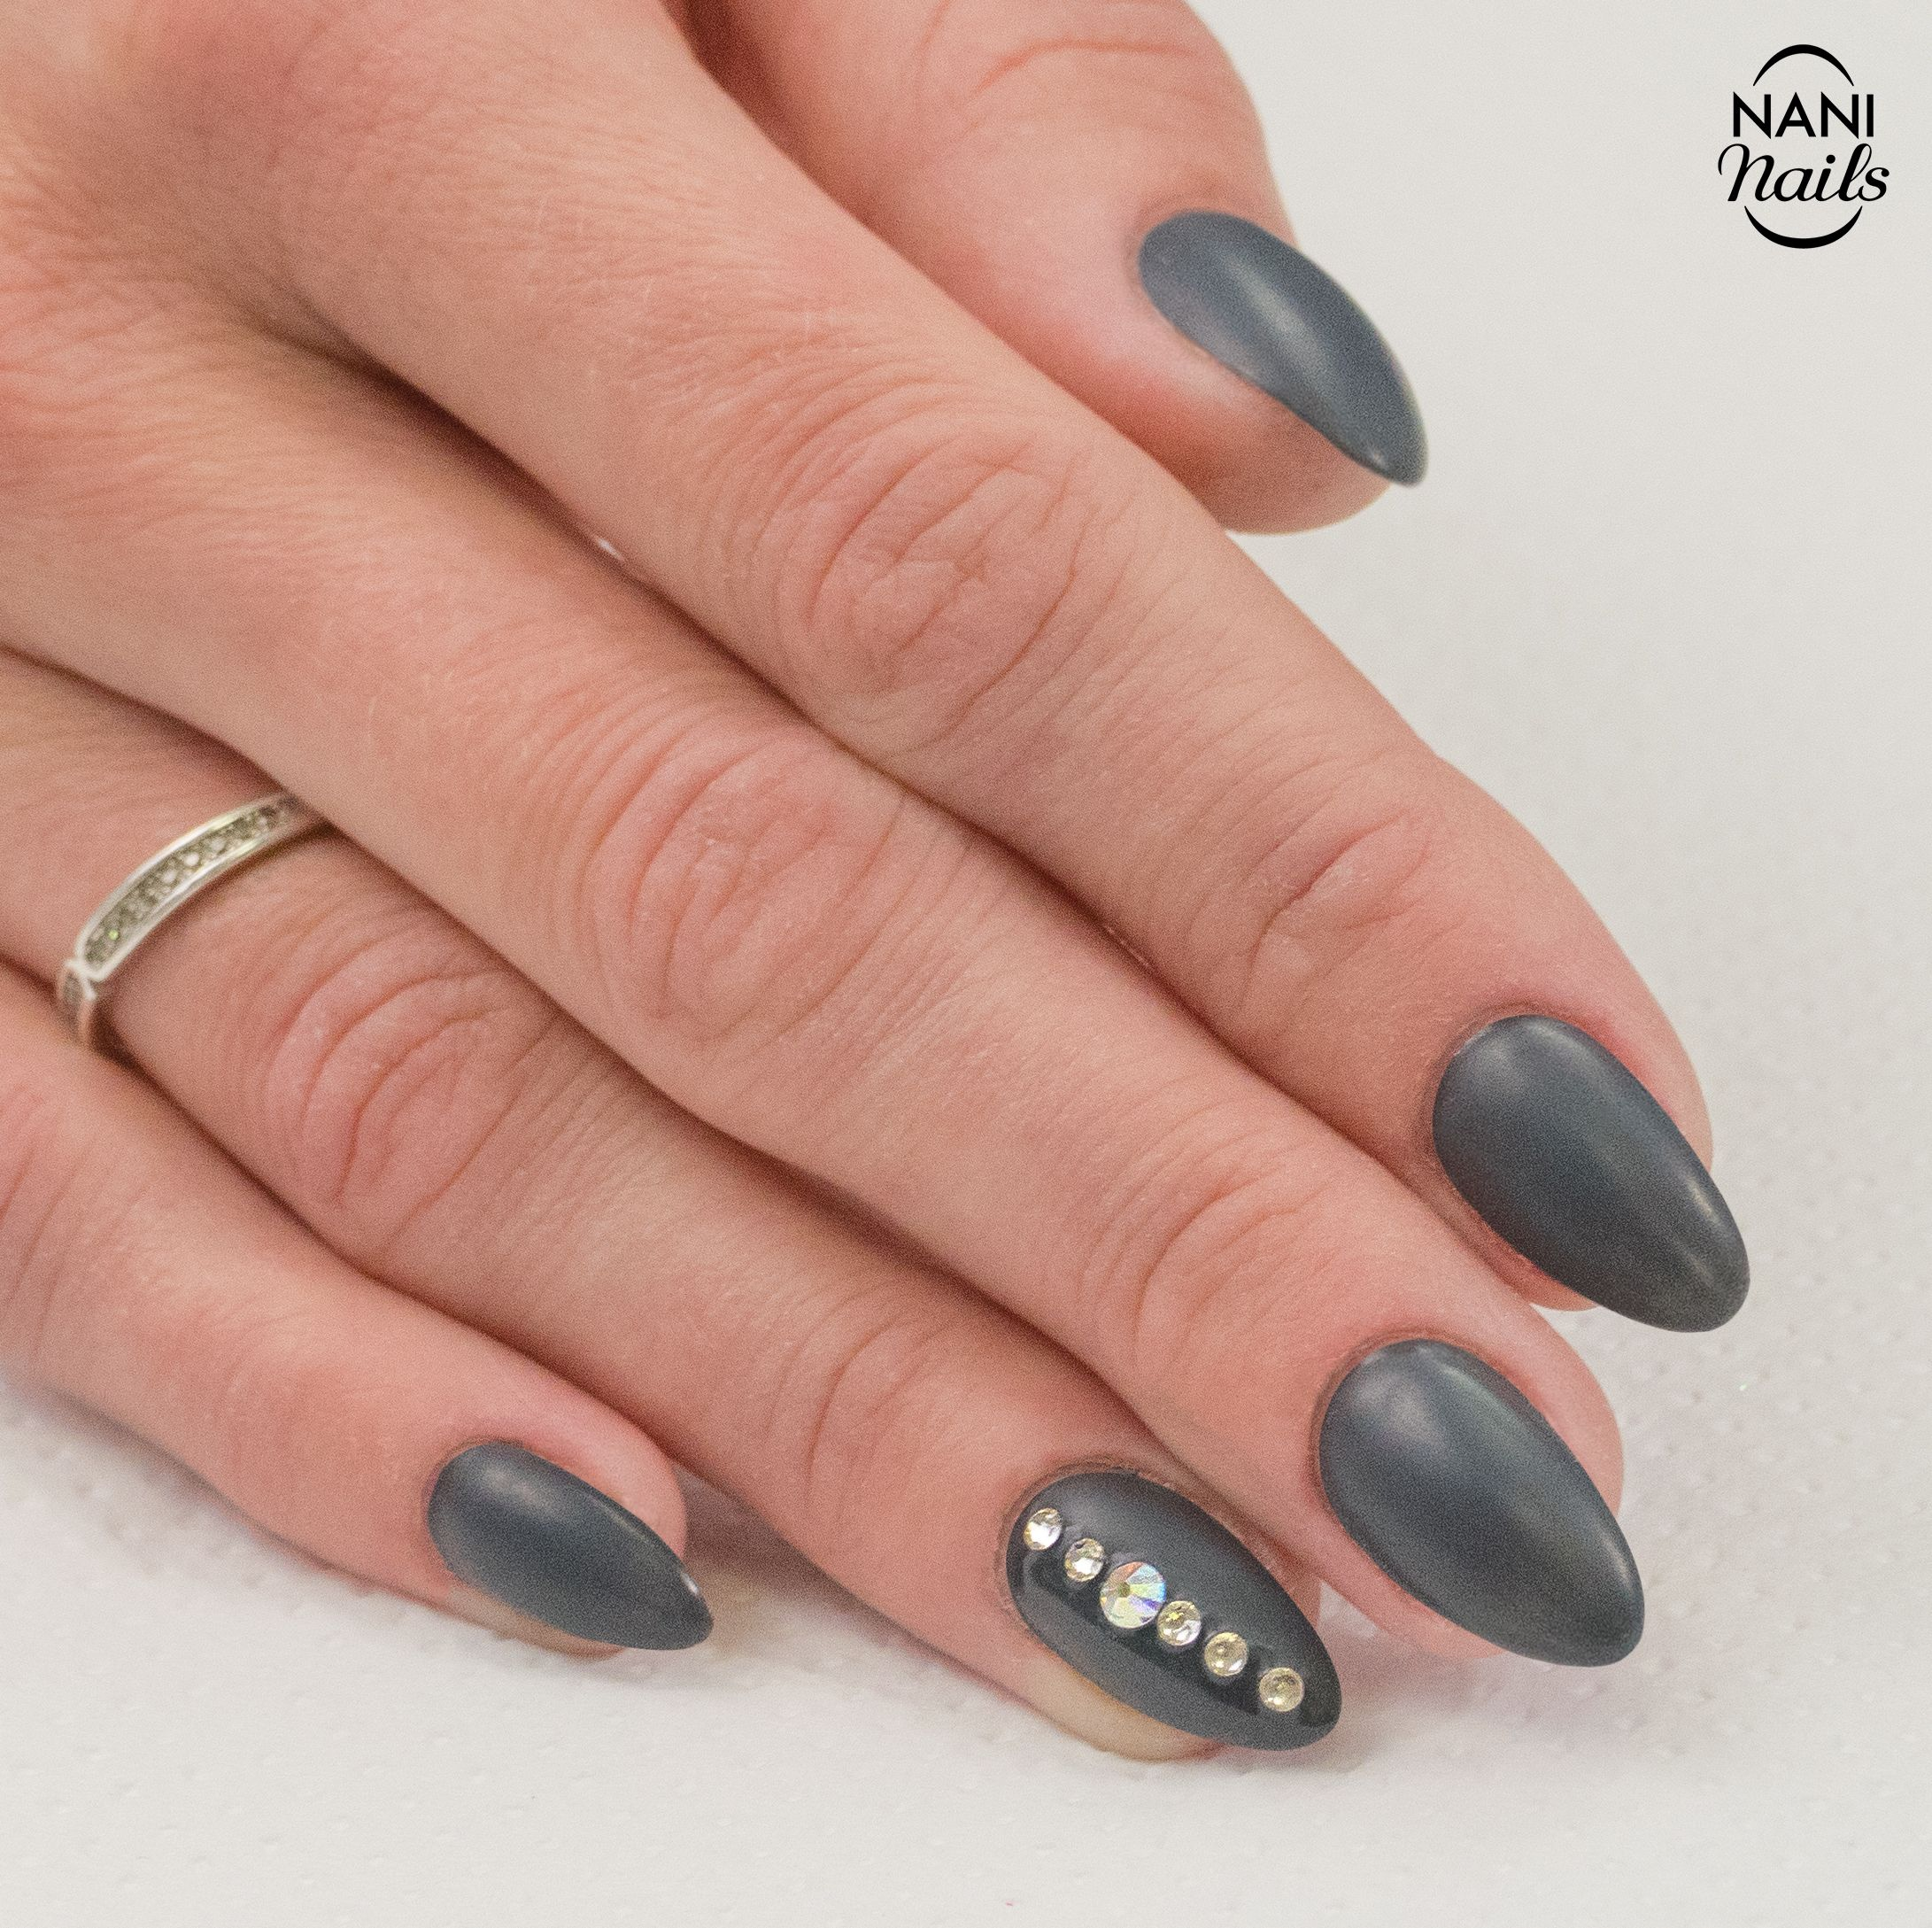 Back To Black Manicure Nails Swarovski Blacklove Gray Naninails Nehet Nail Art Manikura